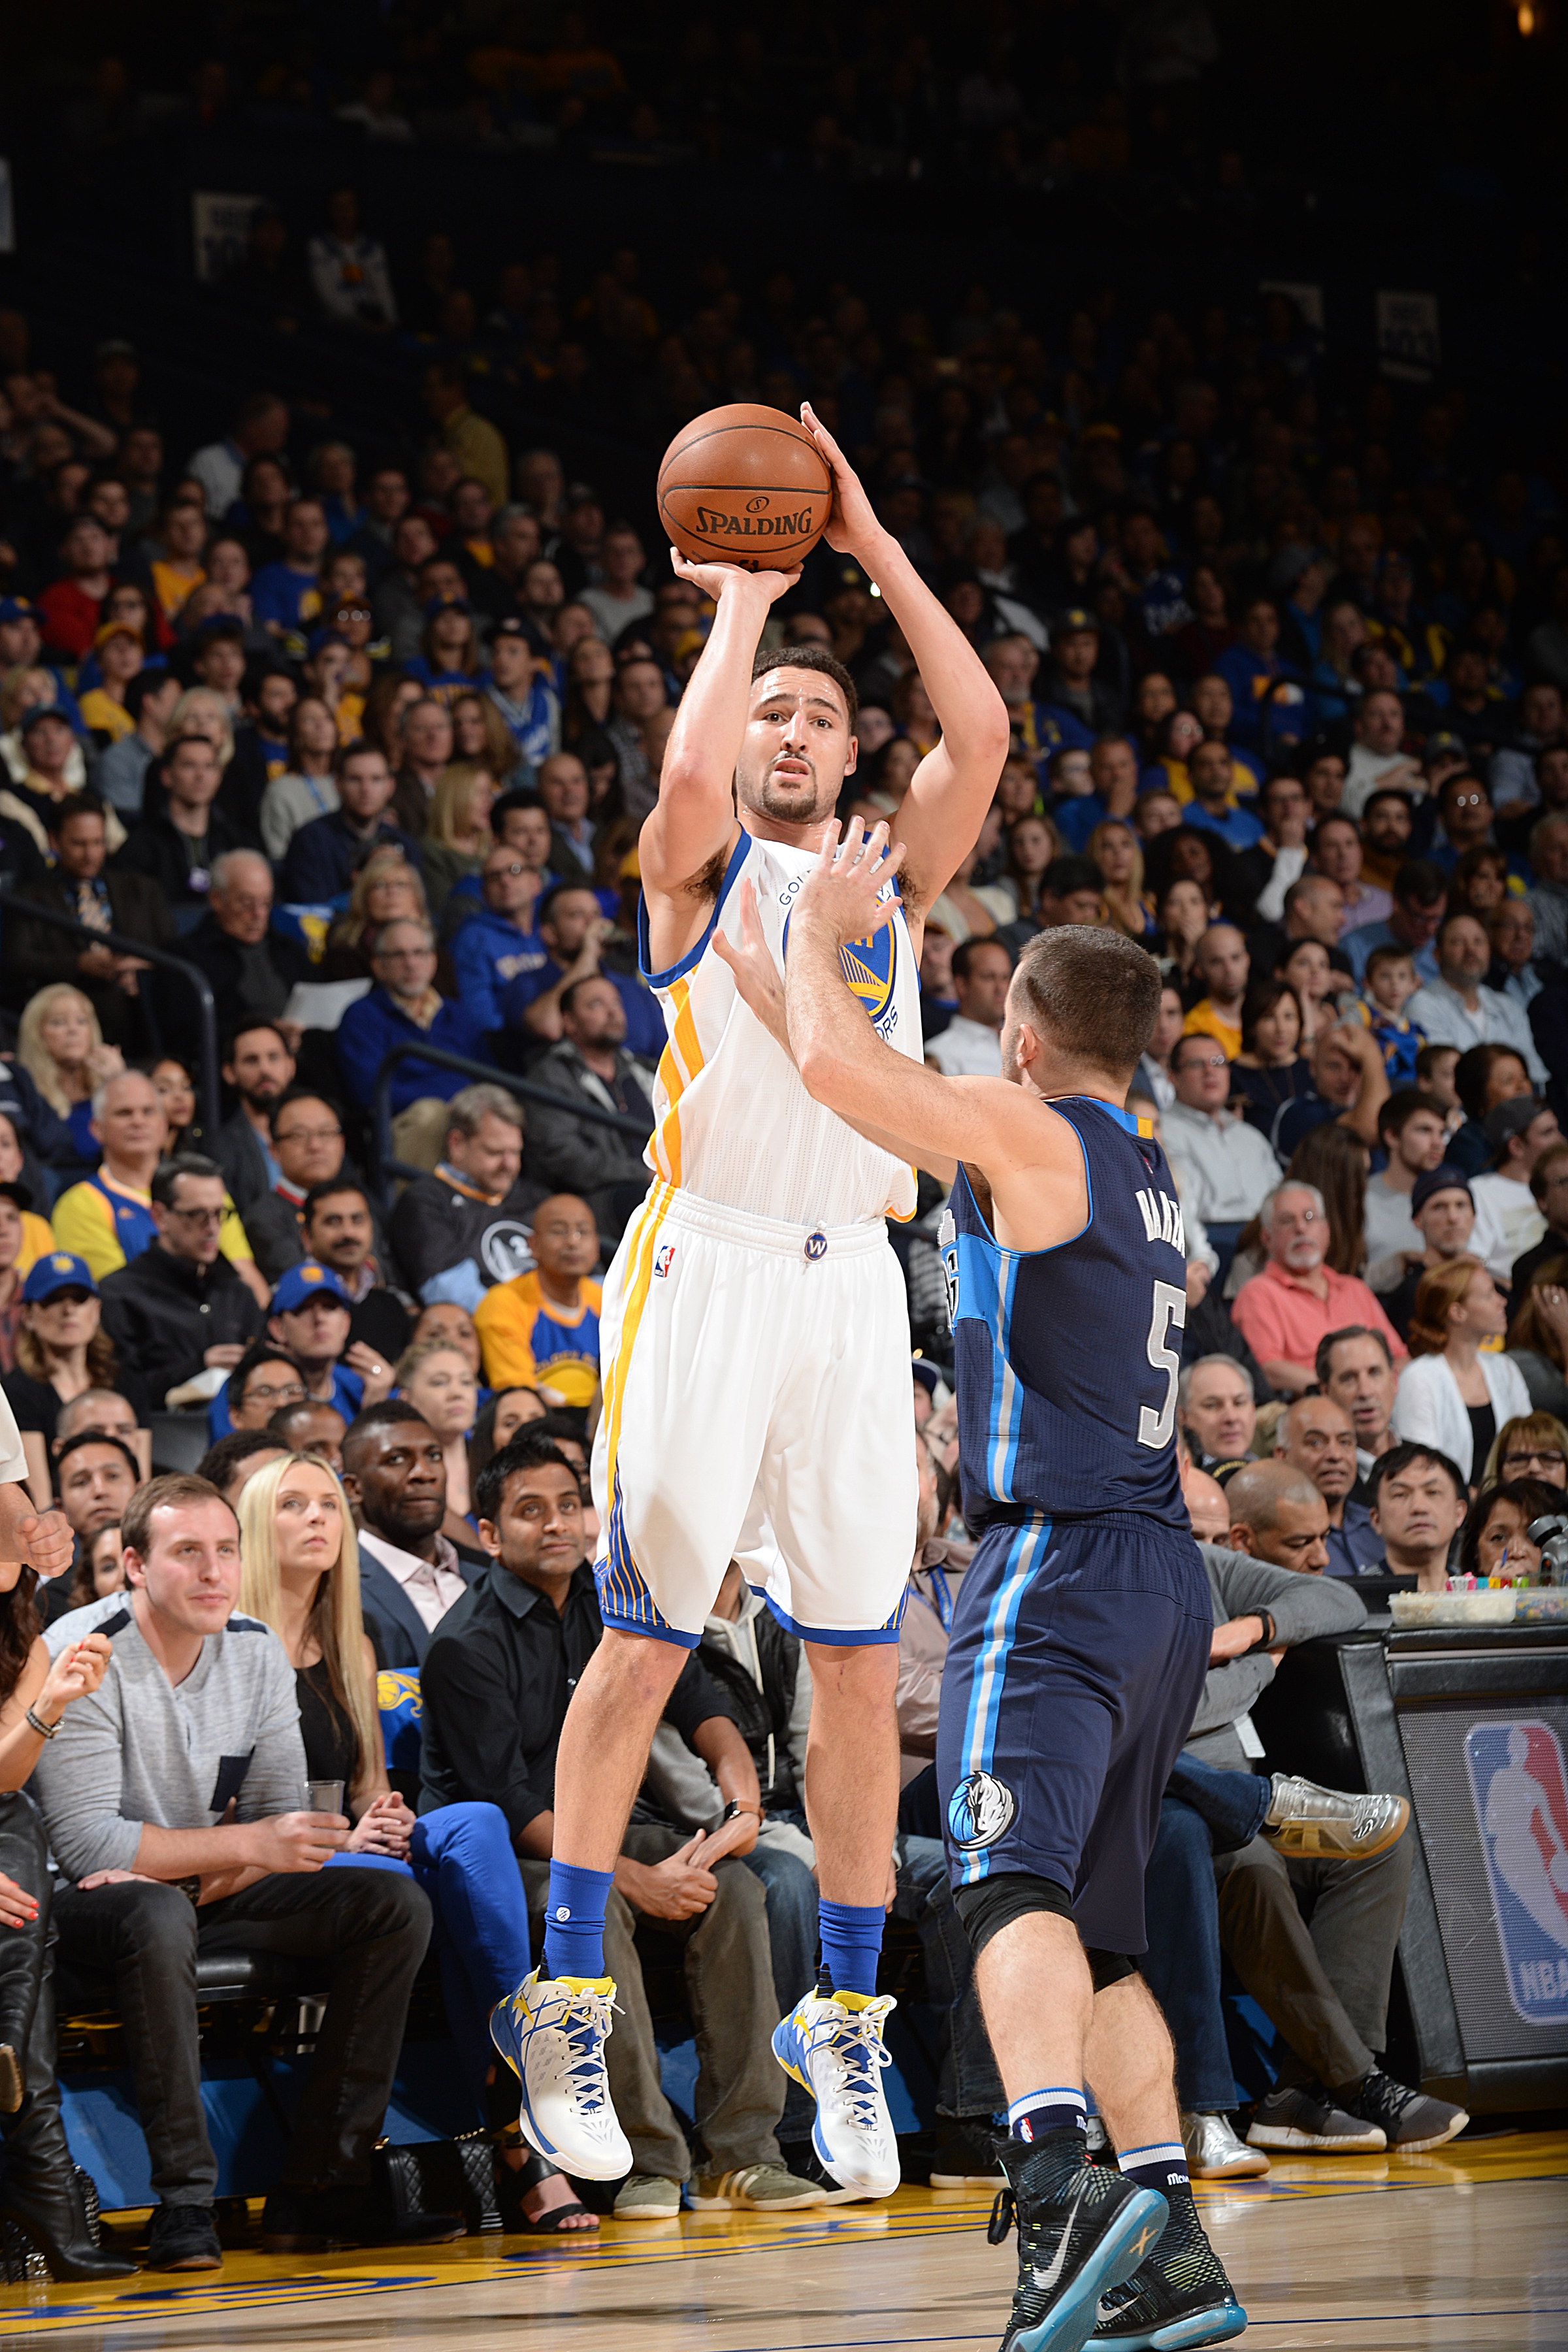 OAKLAND, CA - JANUARY 27:  Klay Thompson #11 of the Golden State Warriors shoots the ball against the Dallas Mavericks on January 27, 2016 at ORACLE Arena in Oakland, California. (Photo by Noah Graham/NBAE via Getty Images)